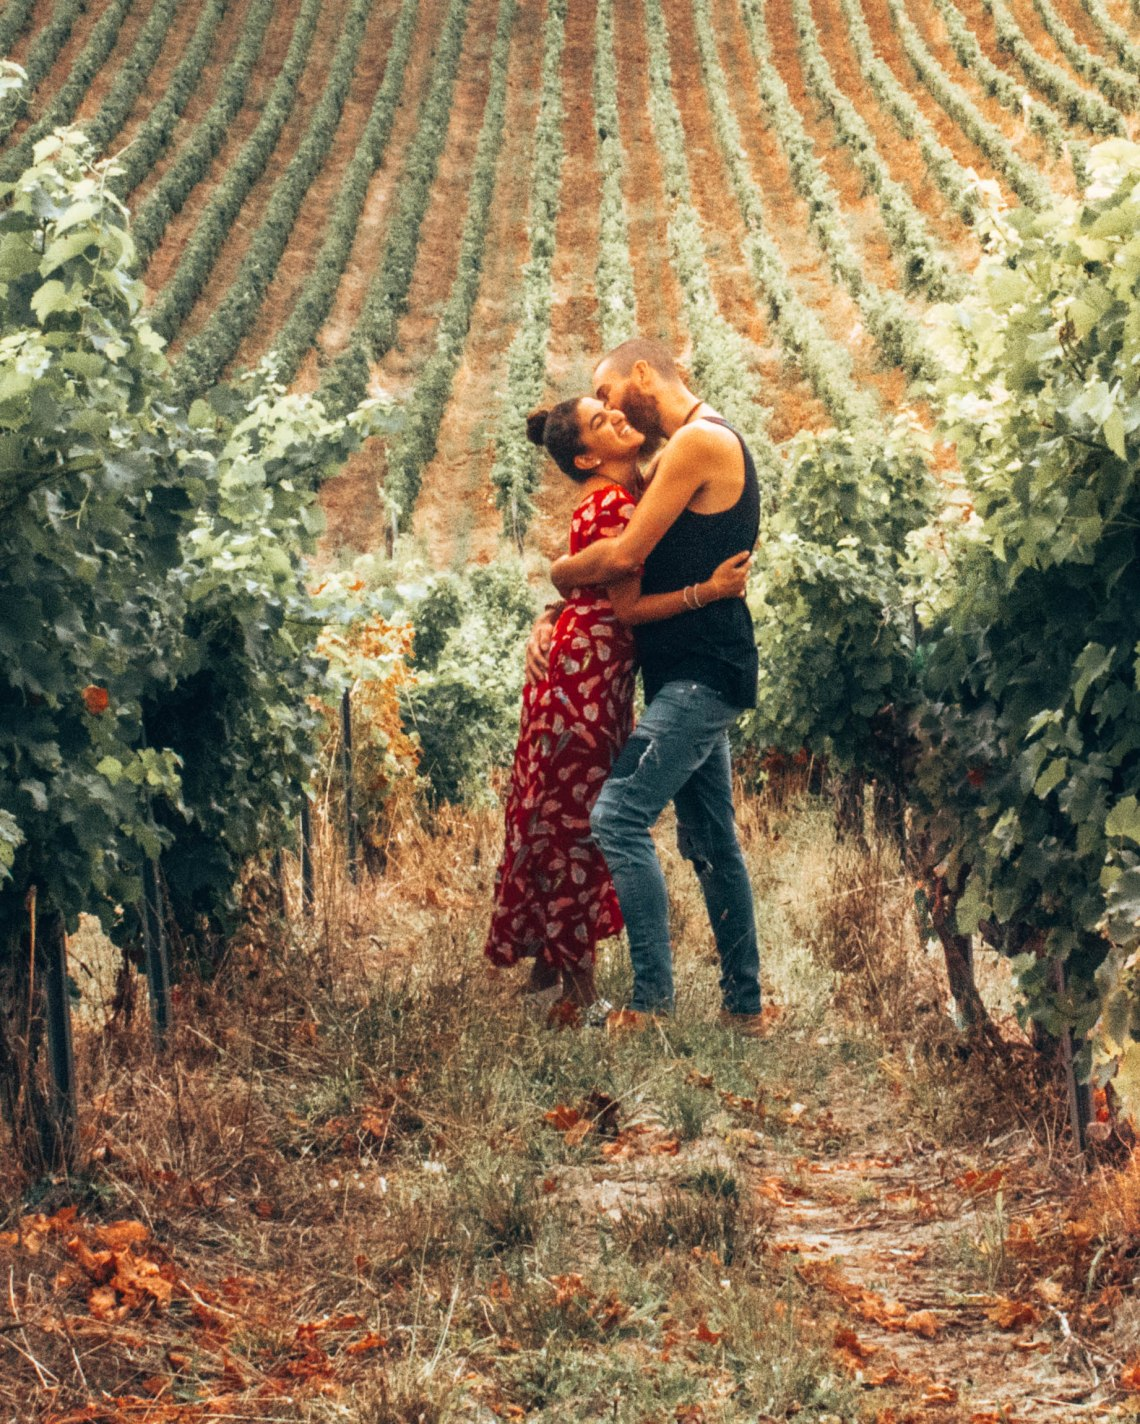 Wediditourway kissing in a vineyard in Gaillac France